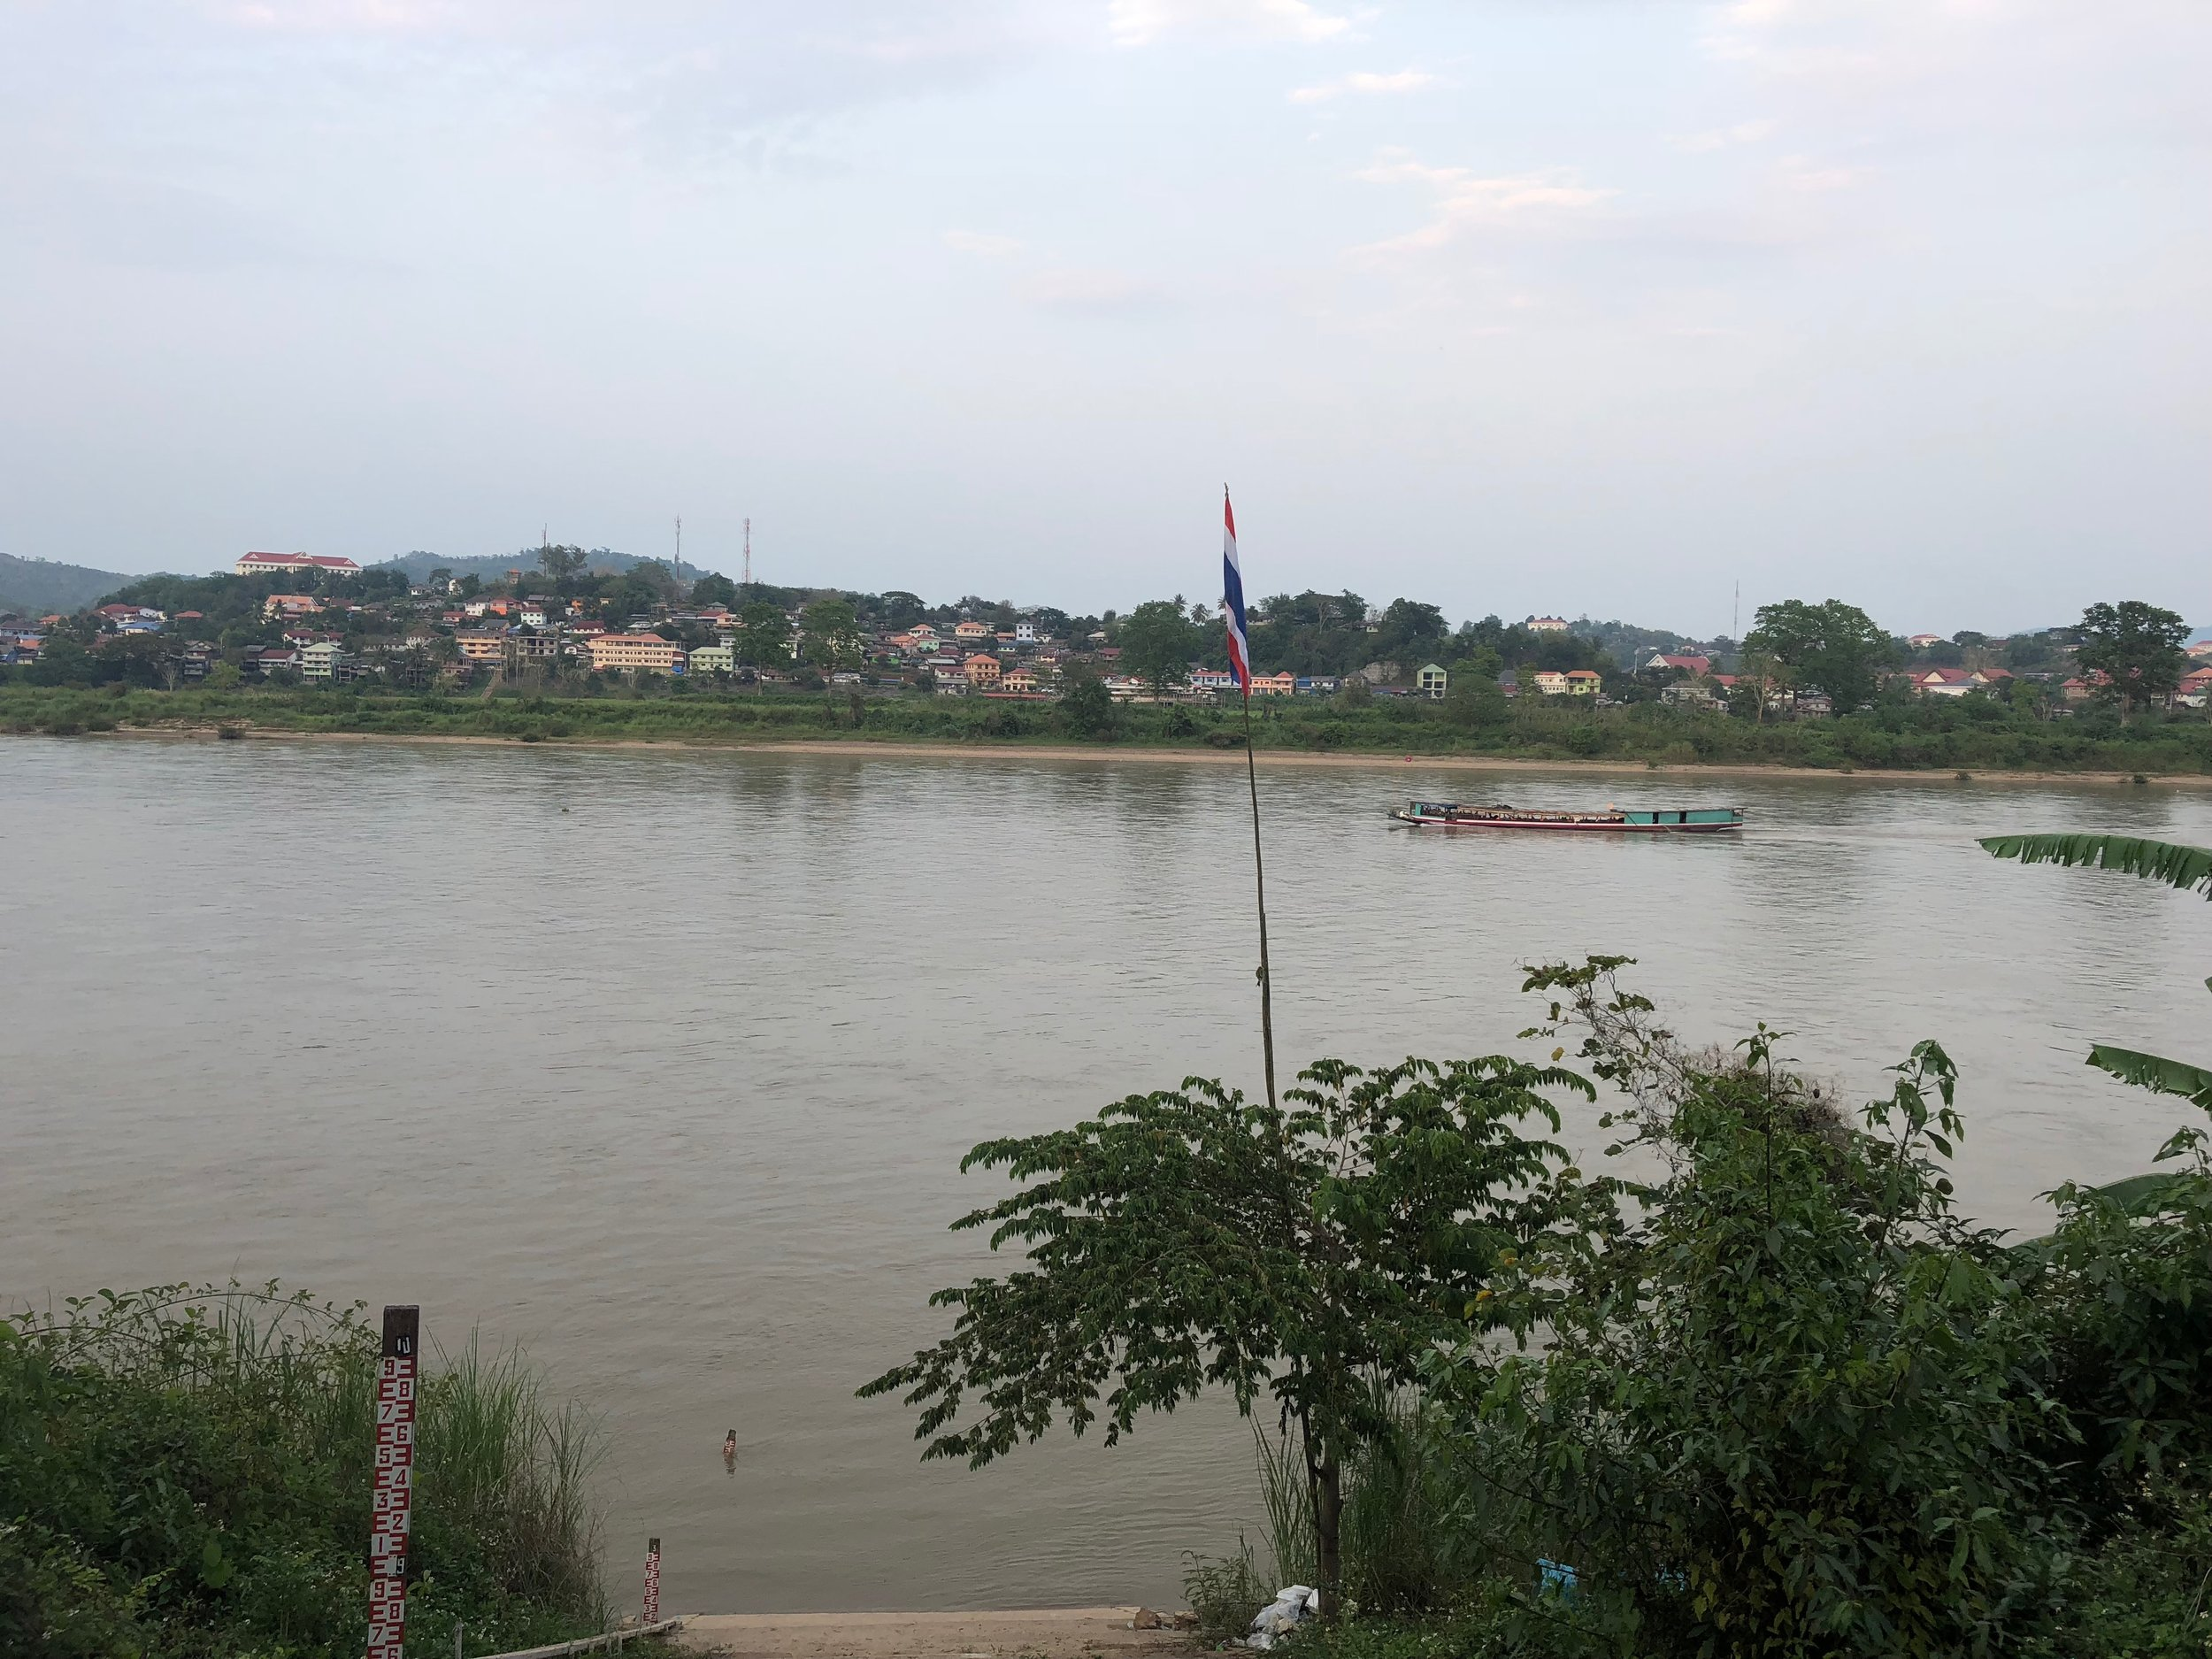 Mekong river with Laos on the other side....